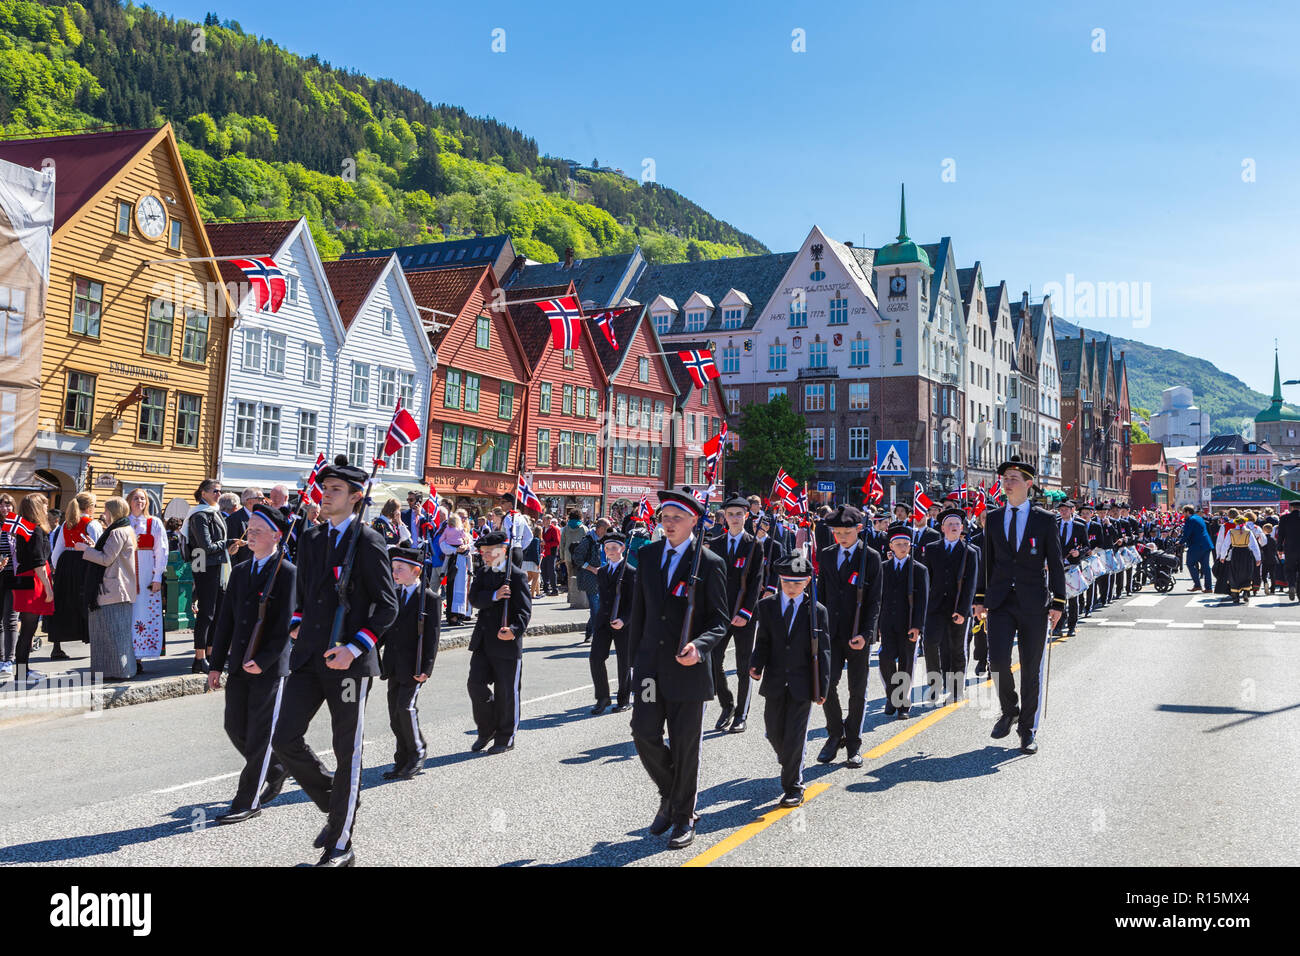 BERGEN / NORWAY - May 17, 2018: National day in Norway. Norwegians at traditional celebration and parade. Stock Photo